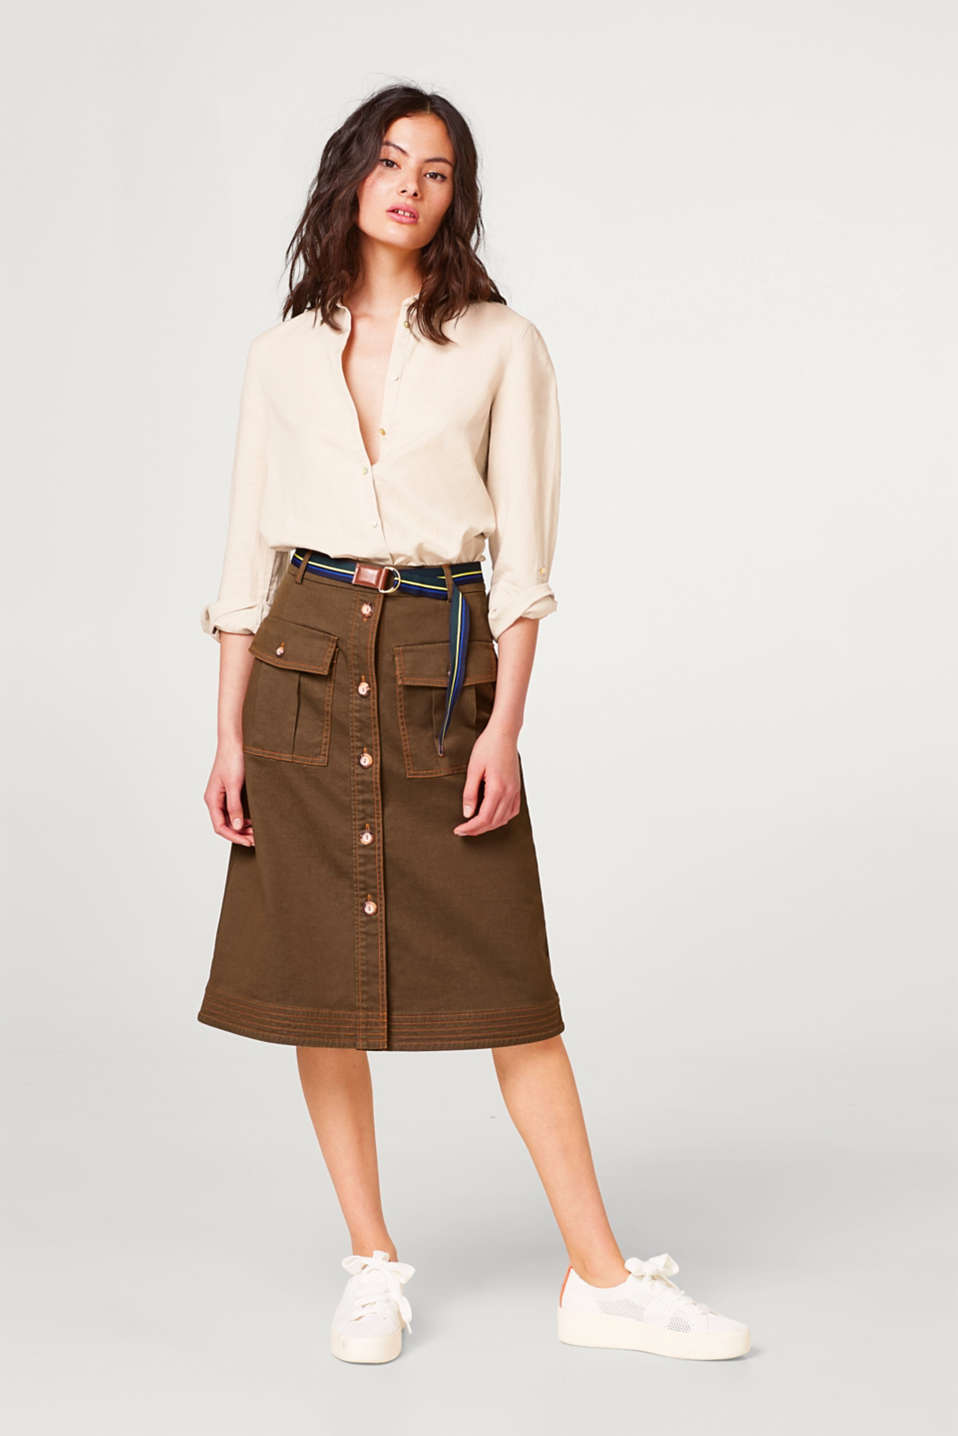 Midi skirt with a belt and pockets